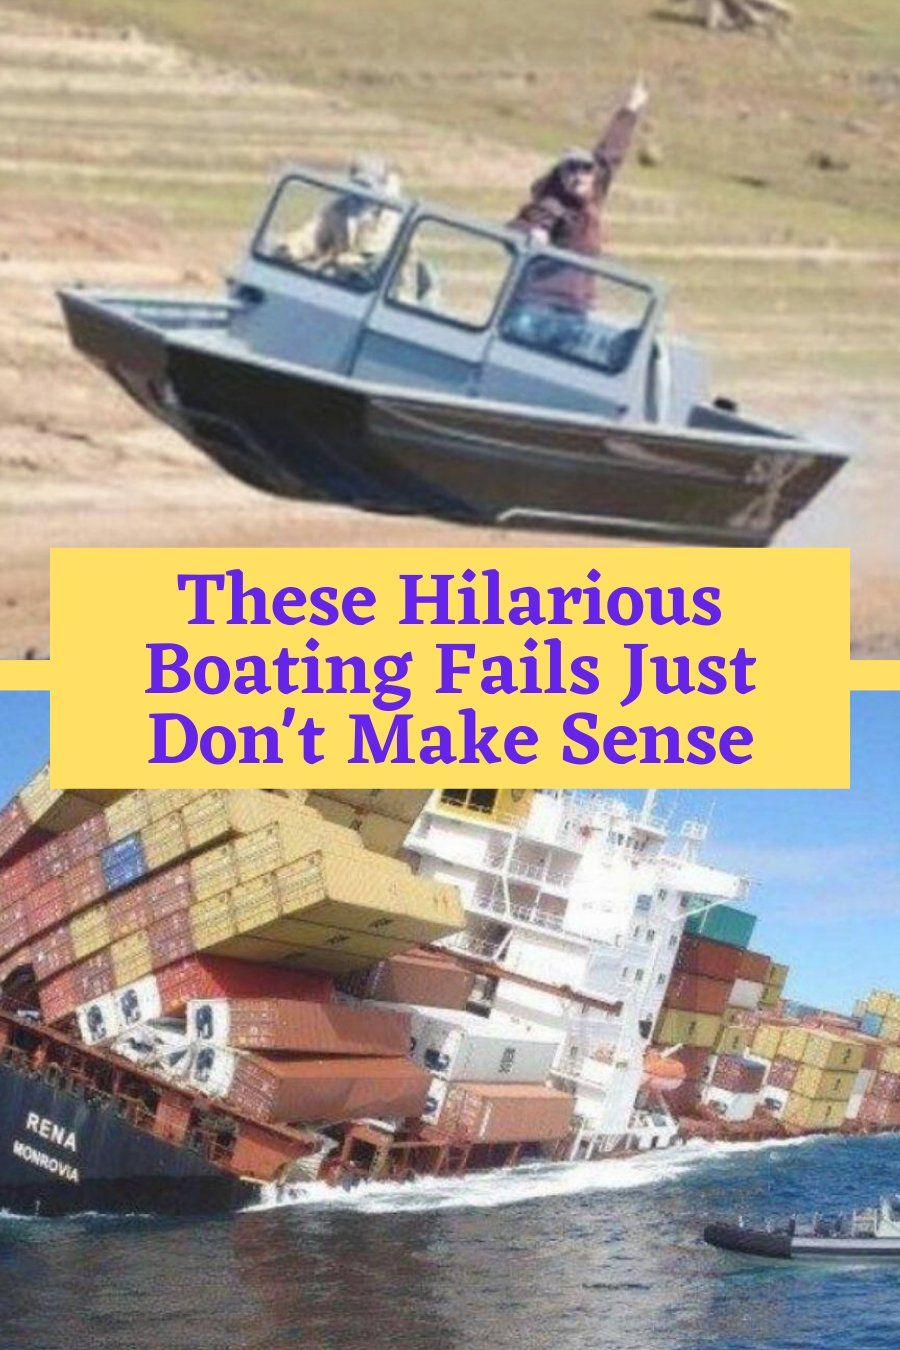 Pin By Gilma Danibeiti On Desk Plant In 2020 Boat Funny Quotes In Hindi Sunken Boats